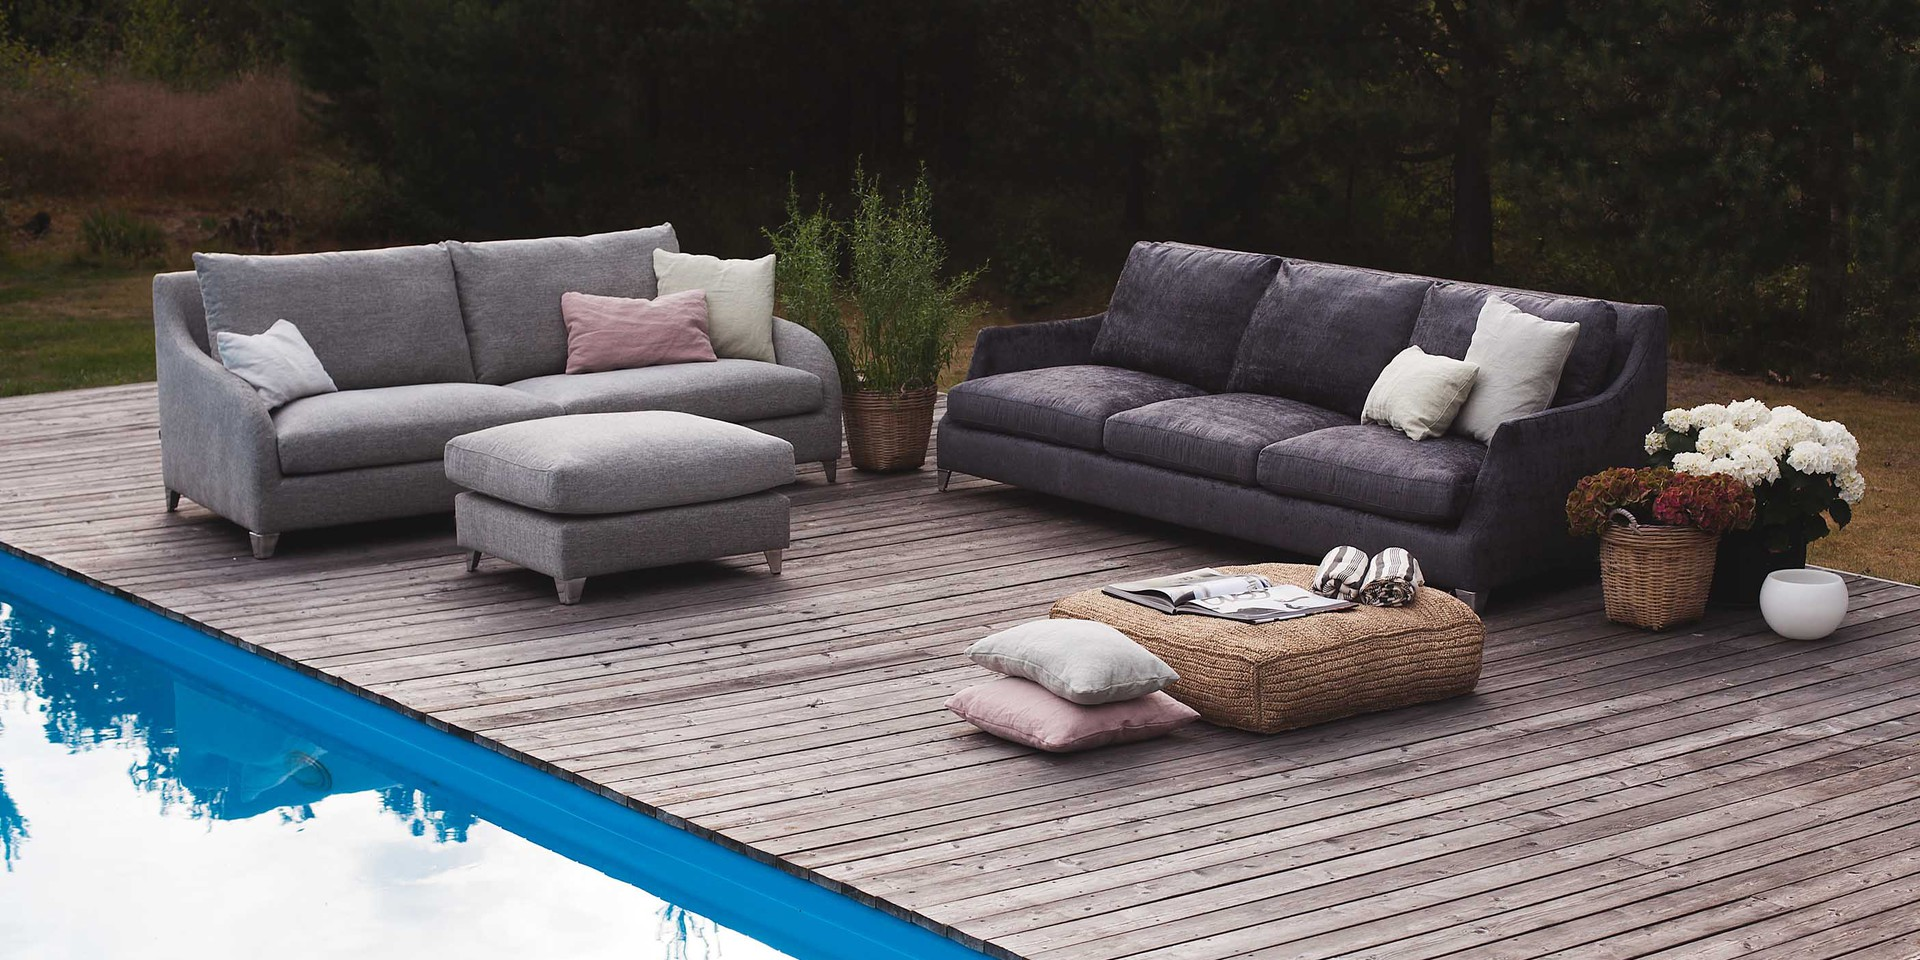 sits-rose-ambiance-Arrangement_ROSE_4seater_messina3_dark_grey_LILY_3seater_footstool_divine50_light_grey_3_0